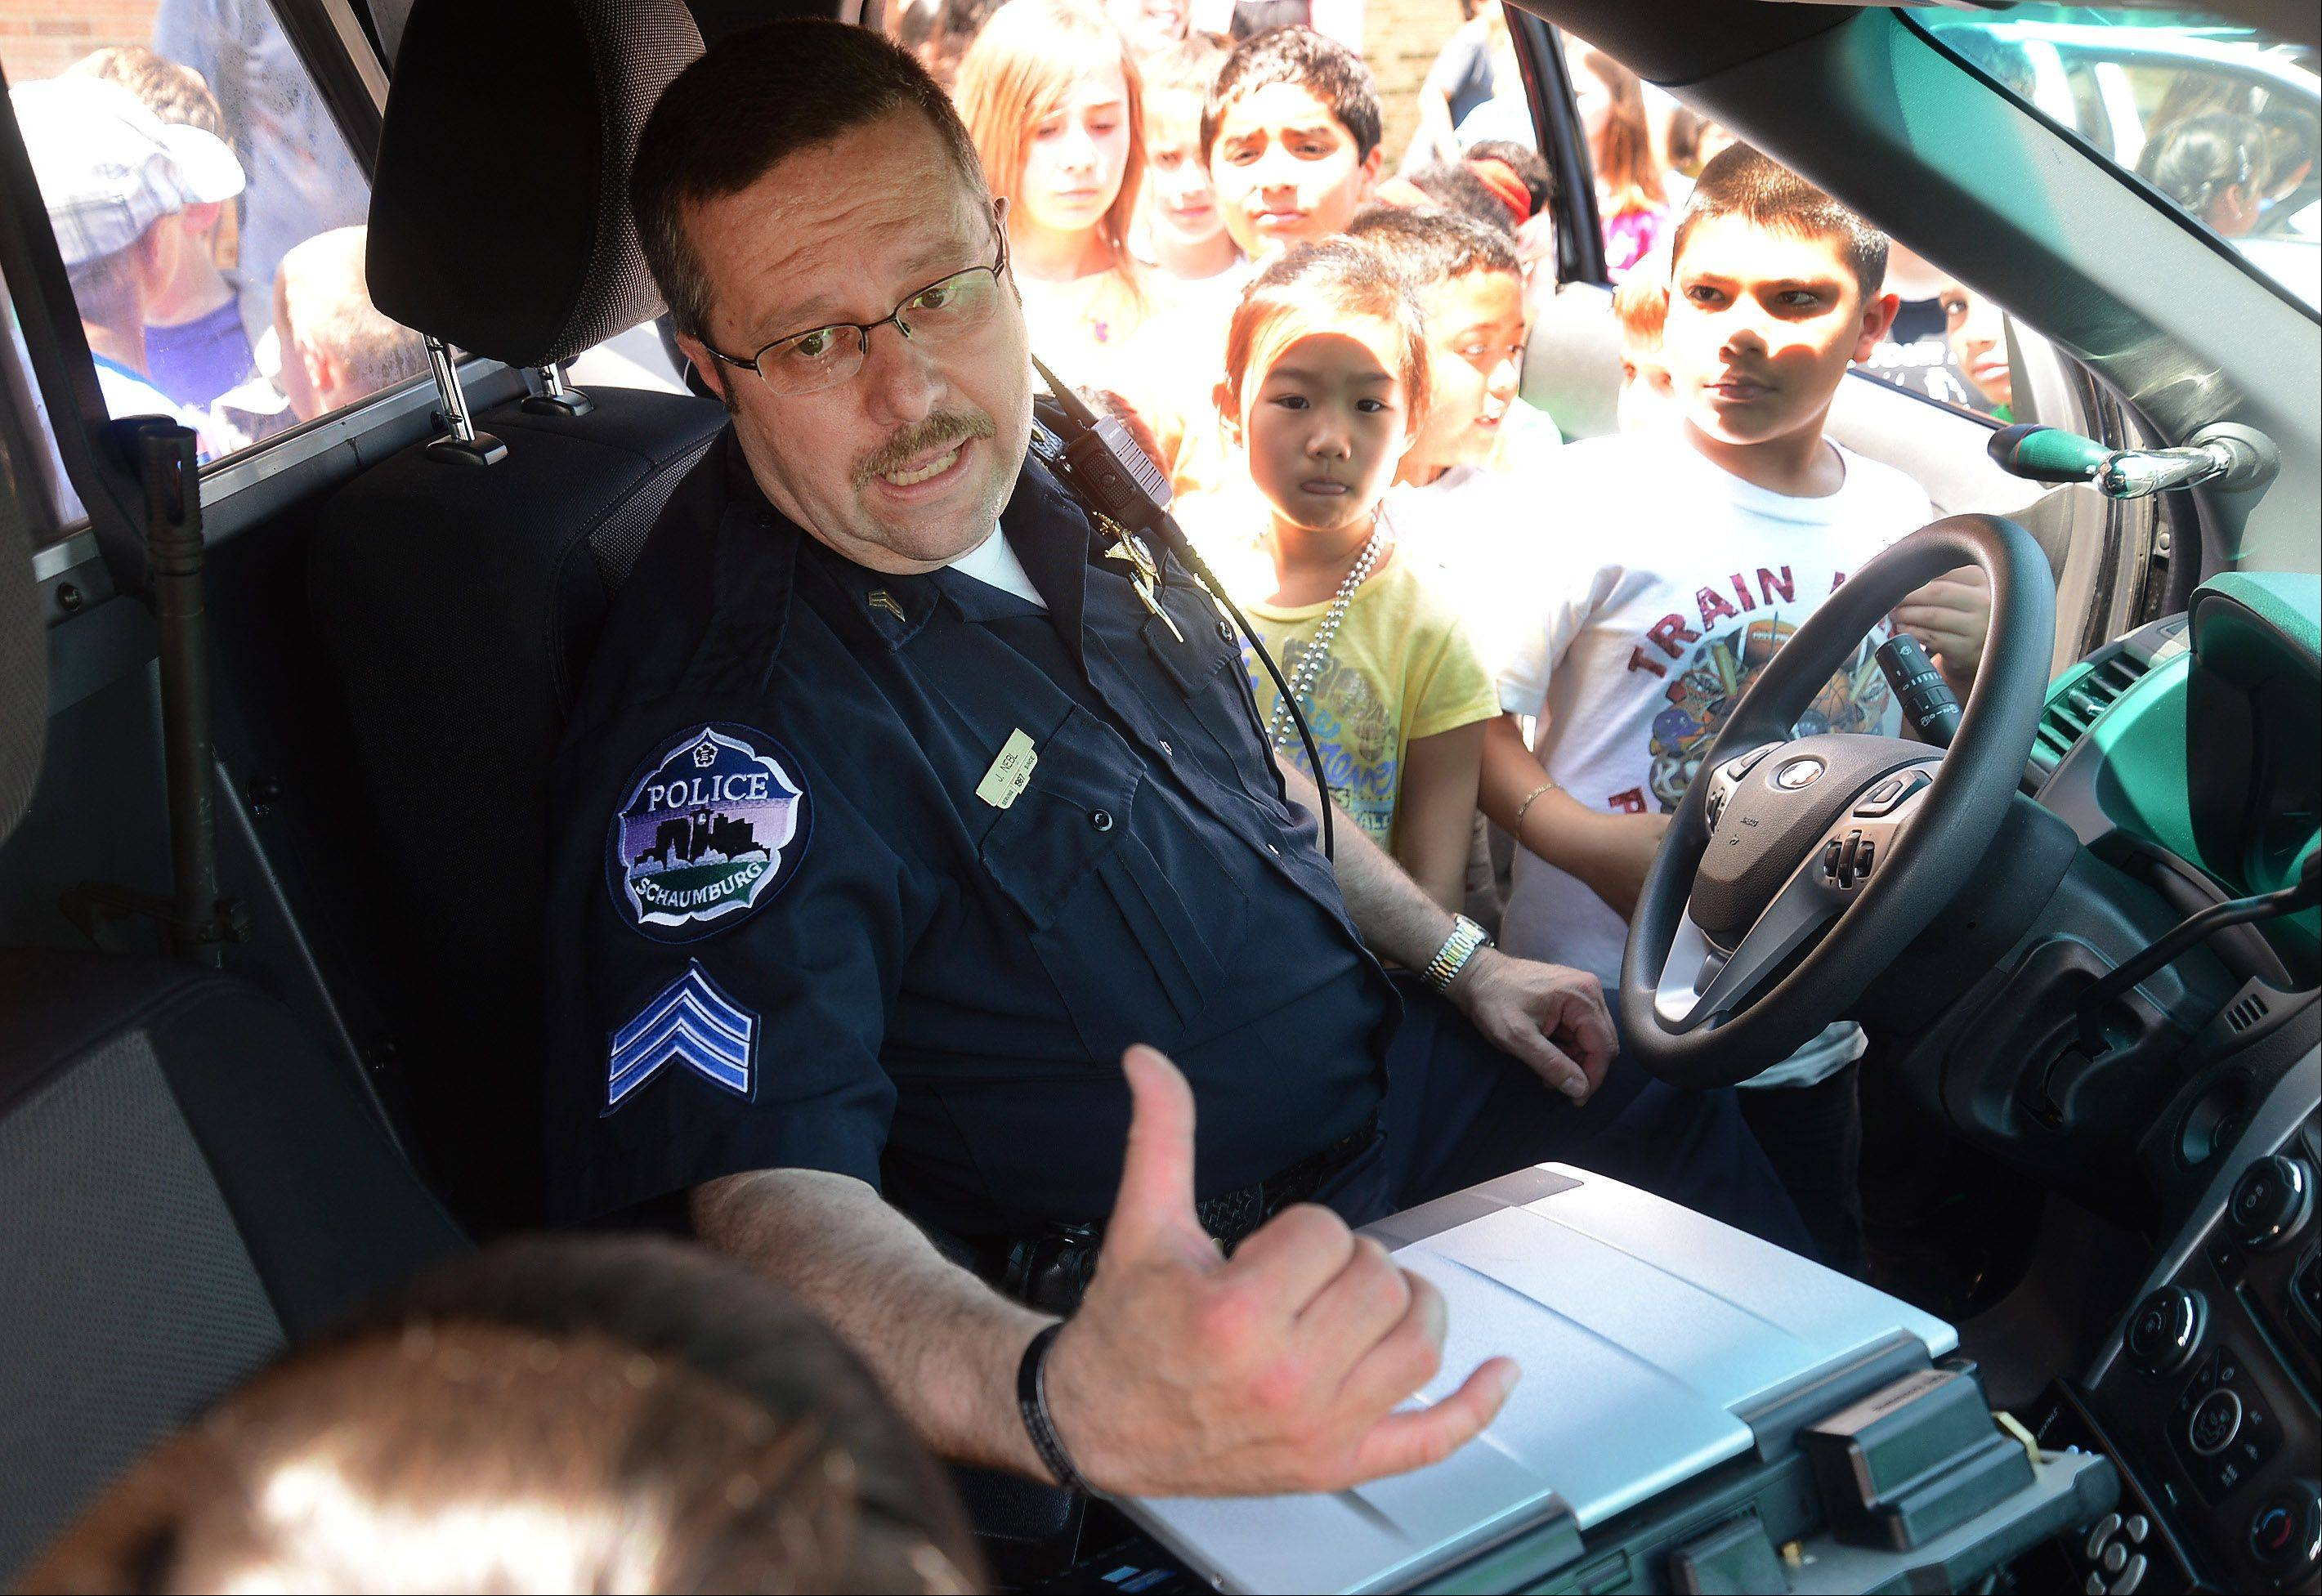 Schaumburg Sgt. John Nebl explains some of the latest technology inside the new police SUV to third and fourth graders at Dirksen Elementary School Wednesday.